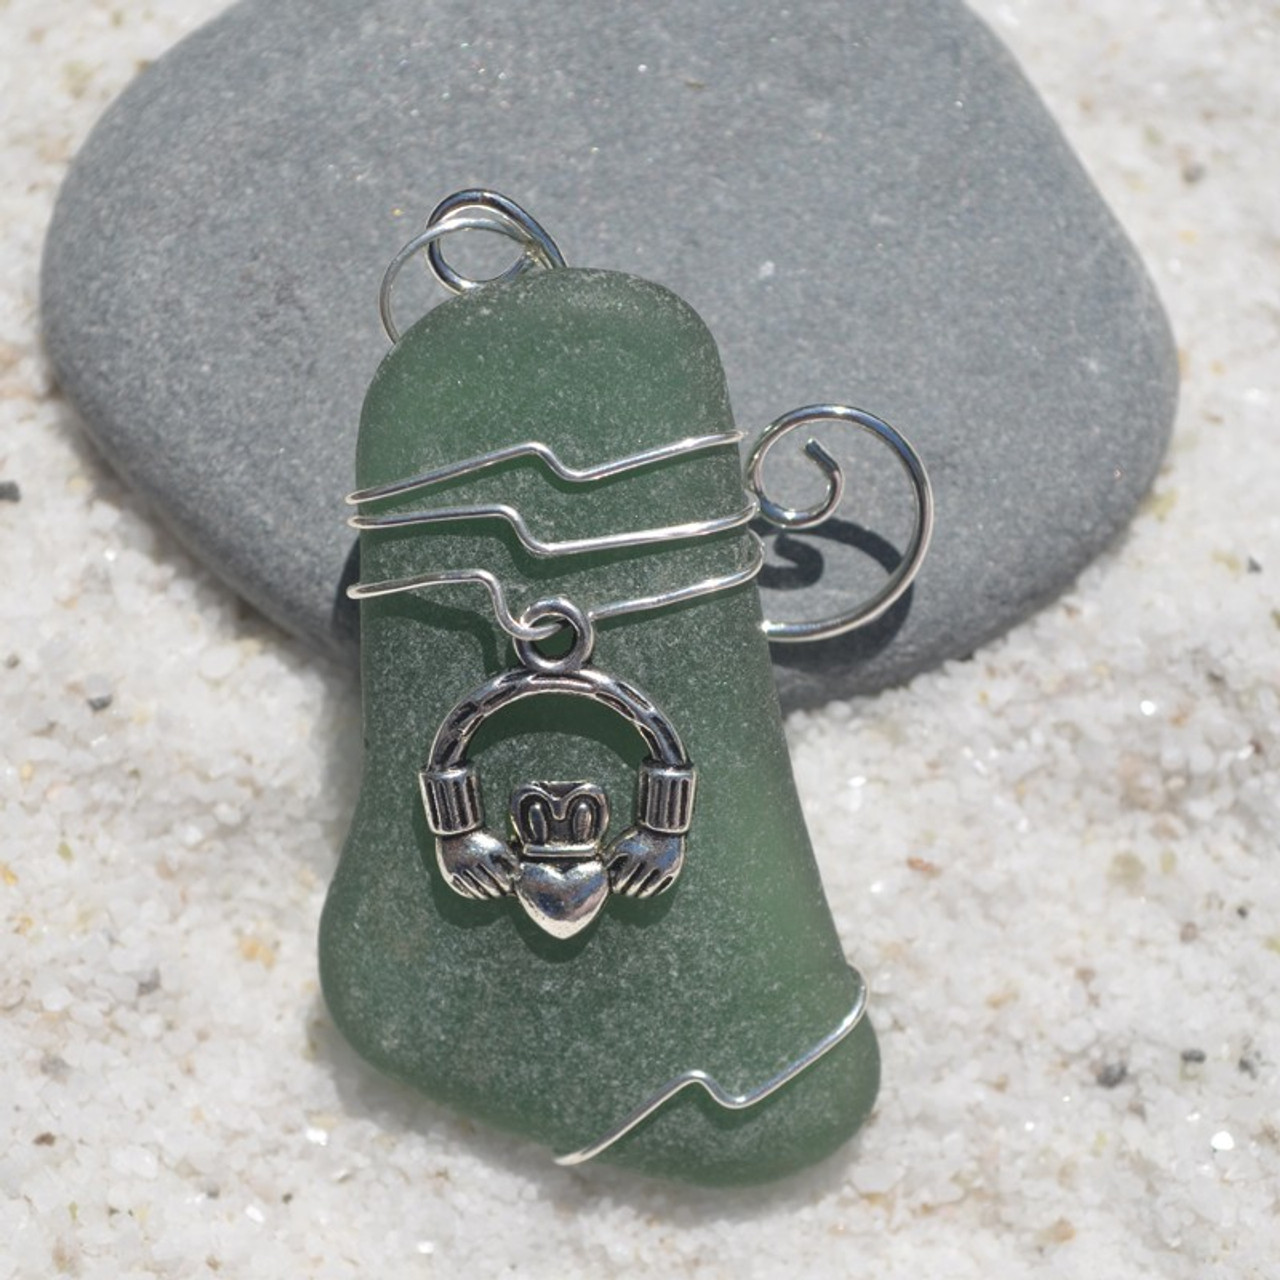 Claddagh Charm on a Custom Surf Tumbled Sea Glass Ornament - Choose Your Color Sea Glass Frosted, Olive Green, and Brown.-1